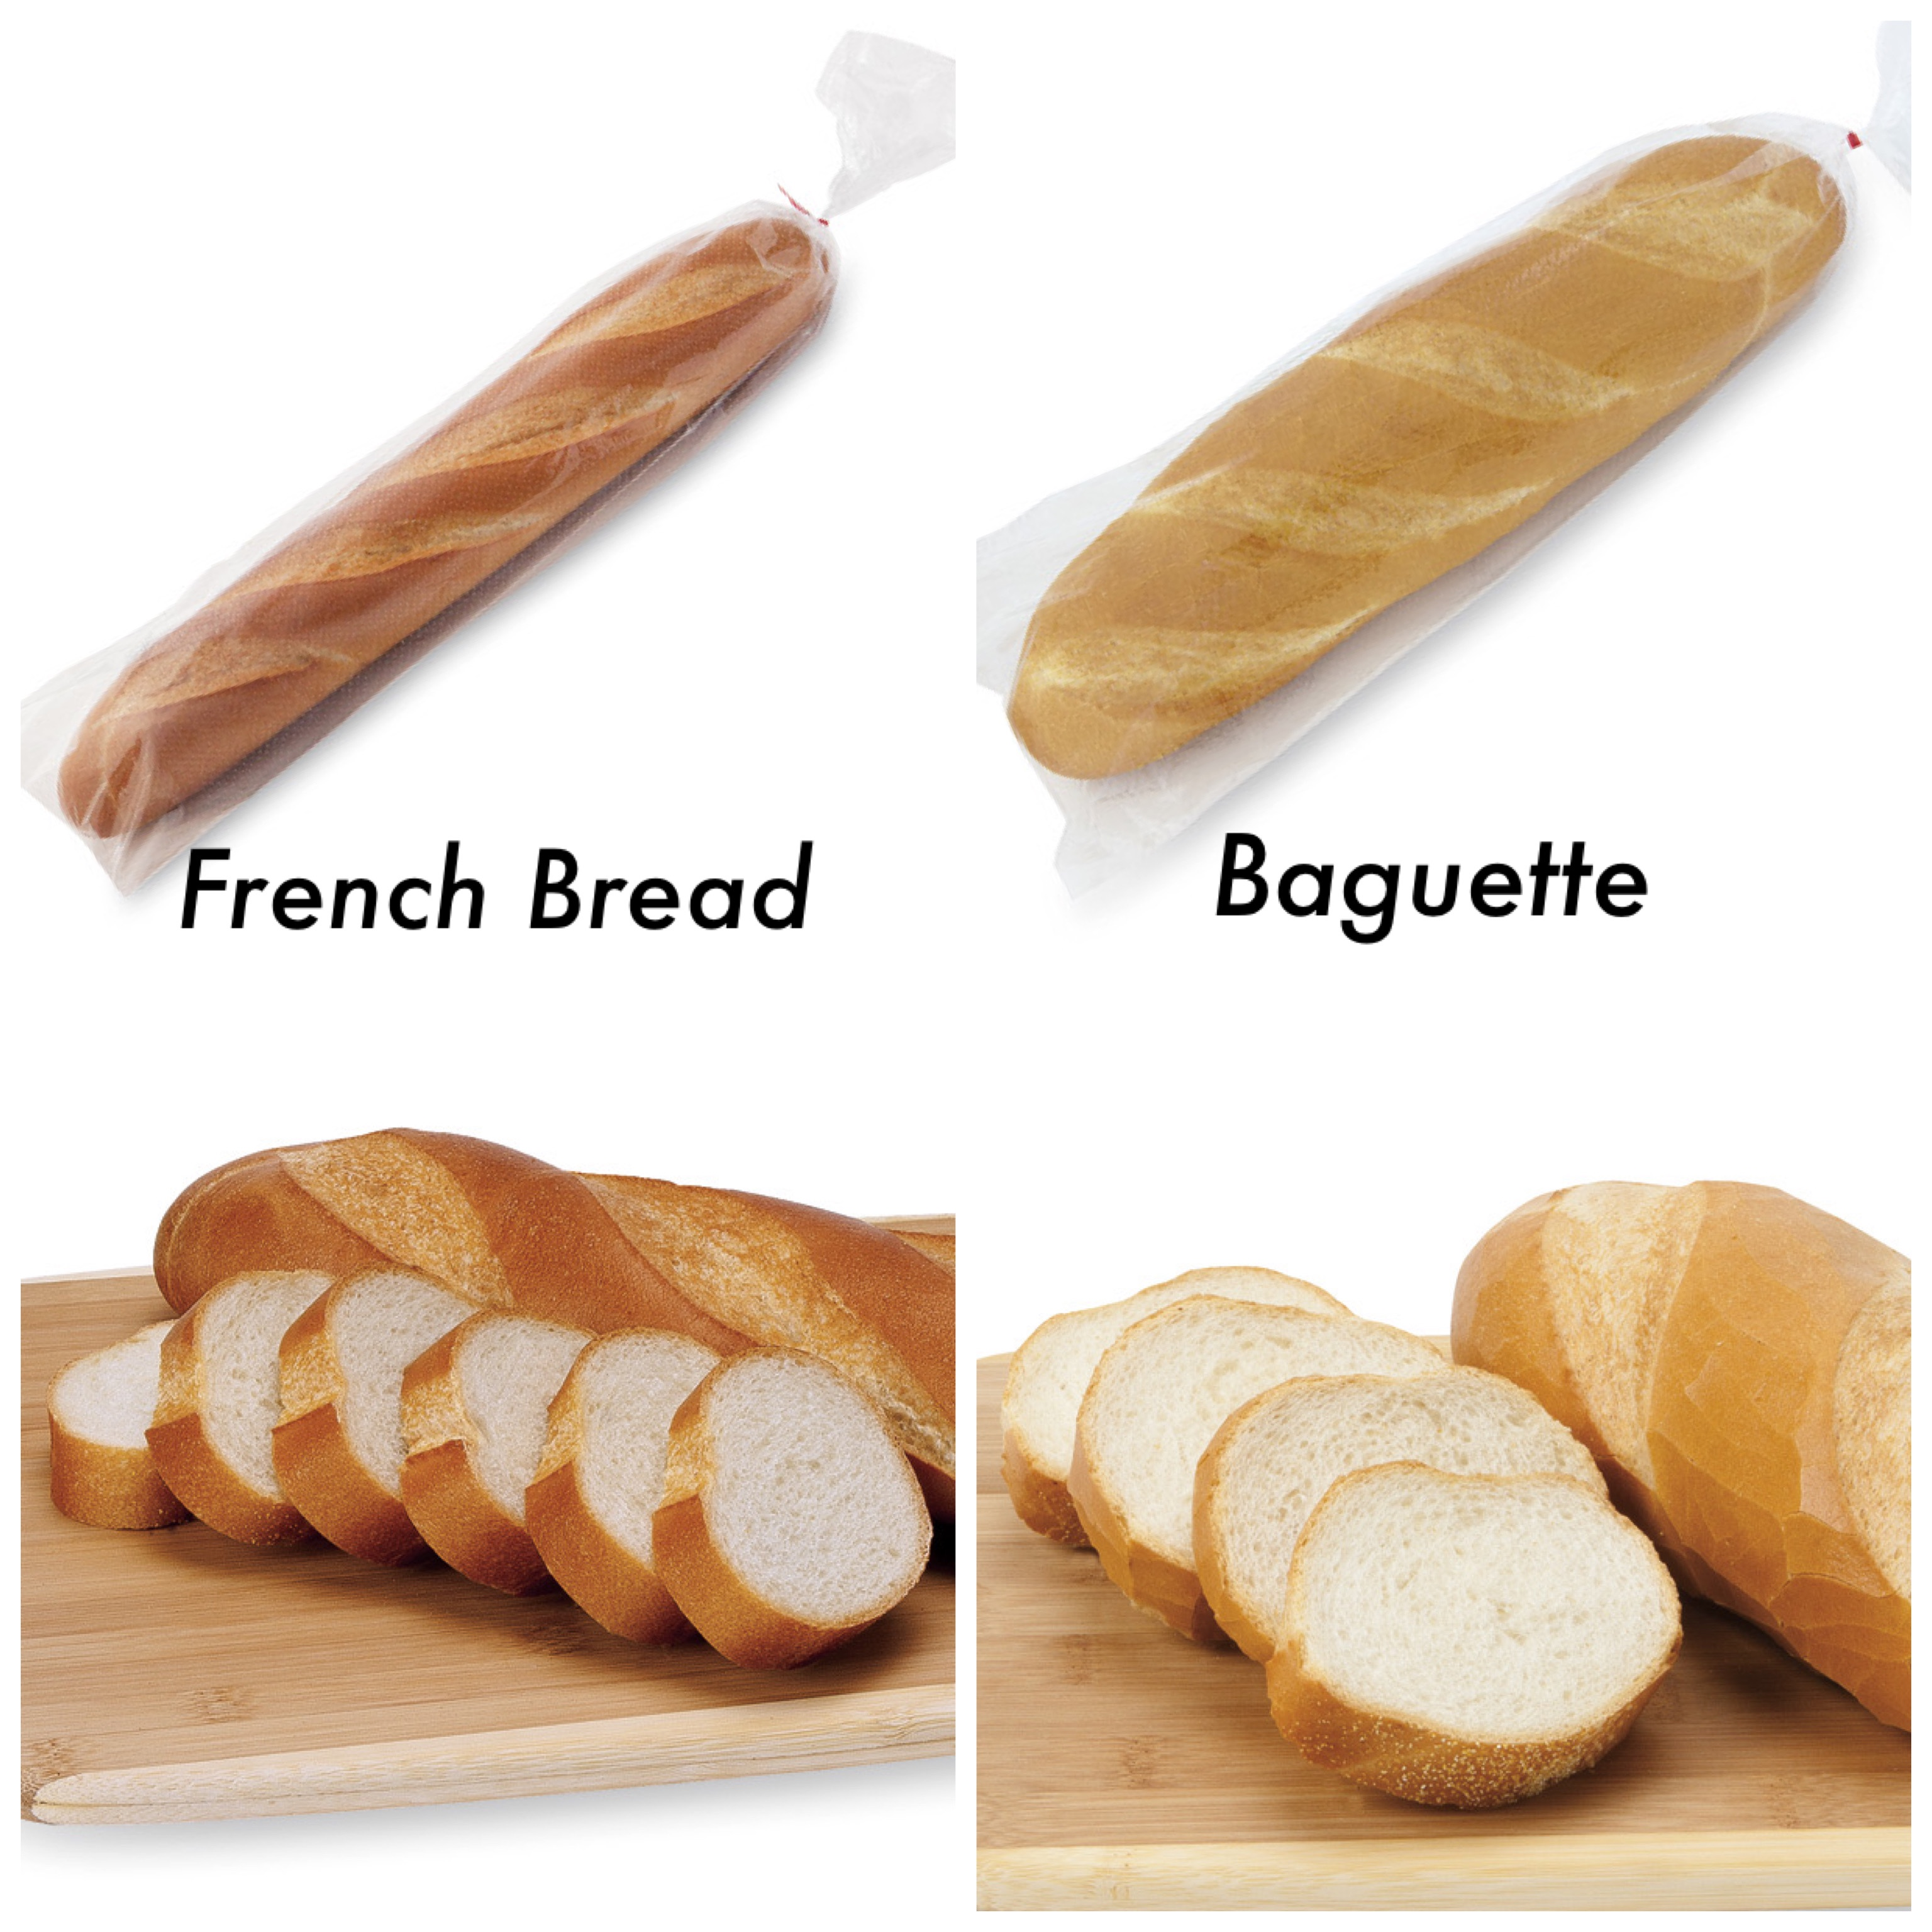 Top left: long, whole loaf in clear bag. Bottom left: slices of long loaf. Middle left: the words French Bread. Top right: Medium length loaf in clear bag. Bottom right: slices of medium loaf. Middle right: the word Baguette.